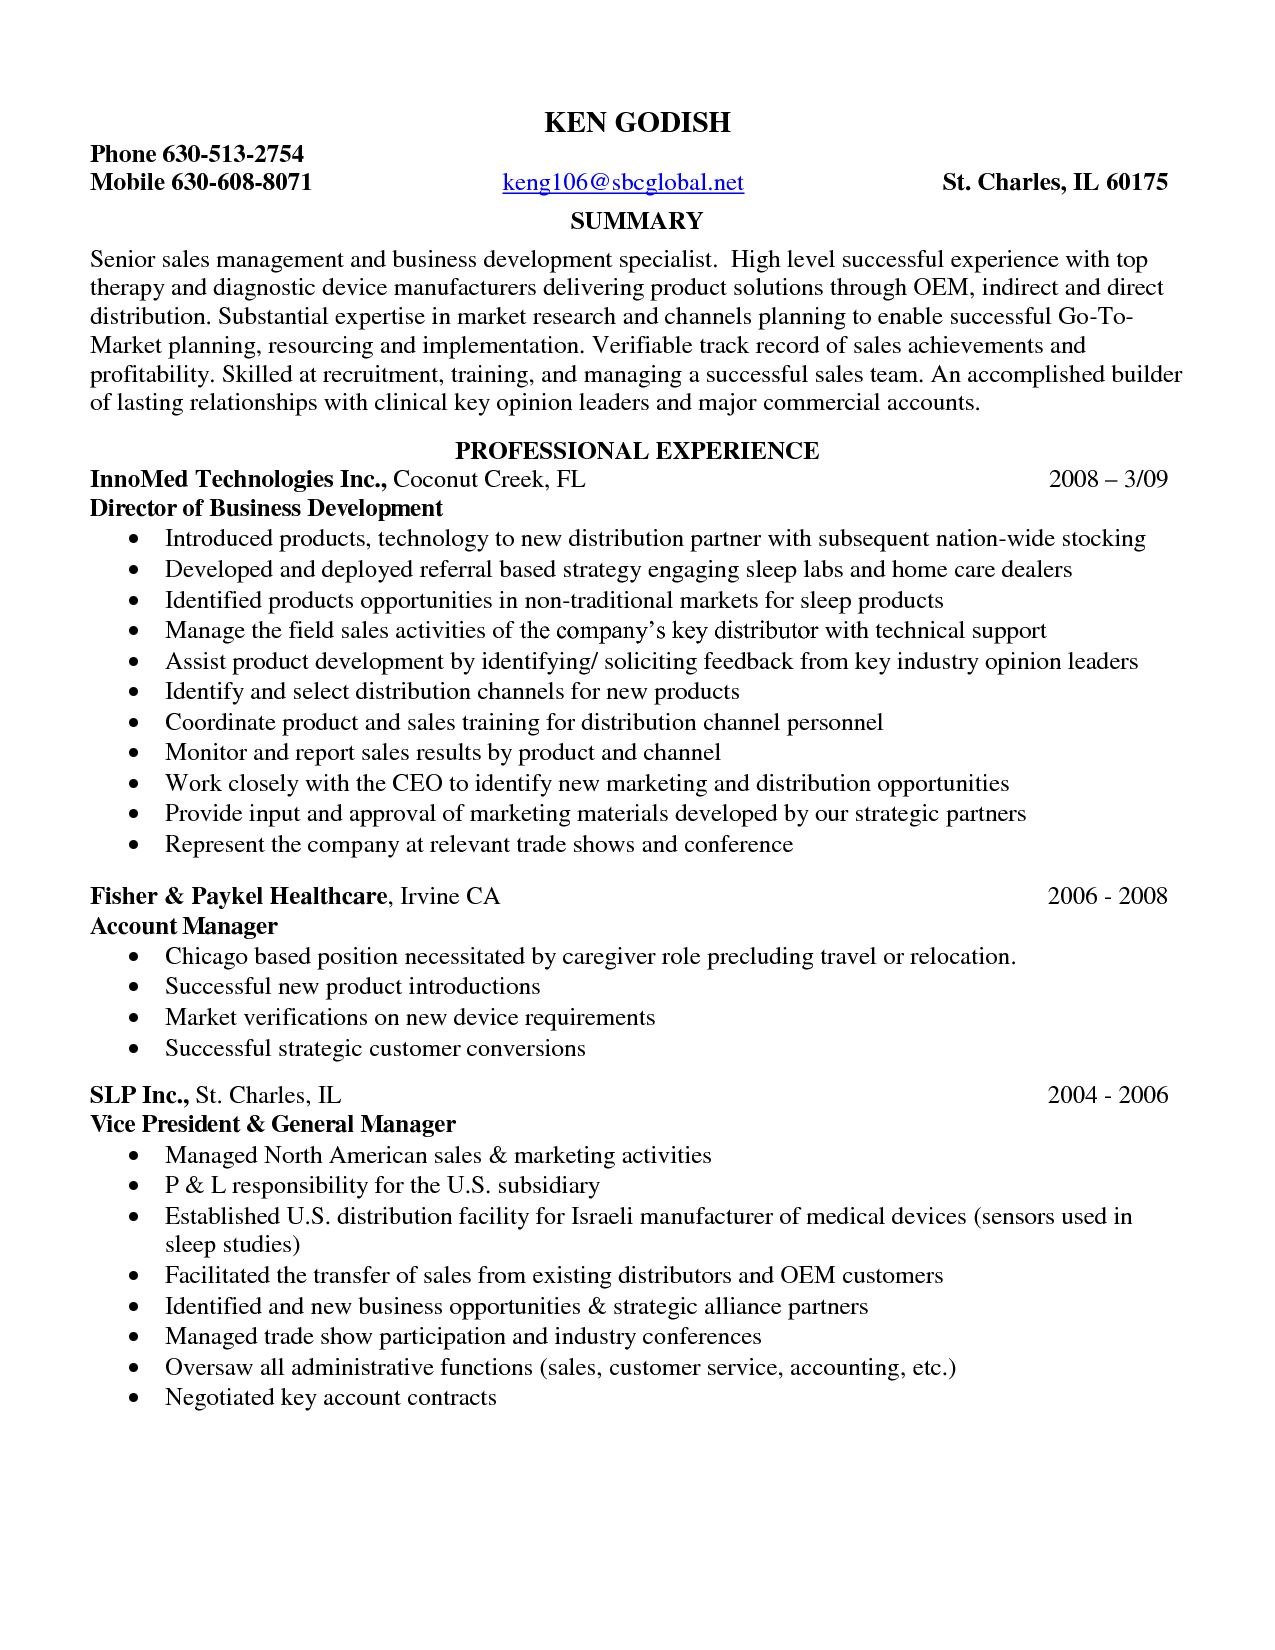 General Objectives For Resumes Sample Resume Entry Level Pharmaceutical Sales Sample Resume Entry